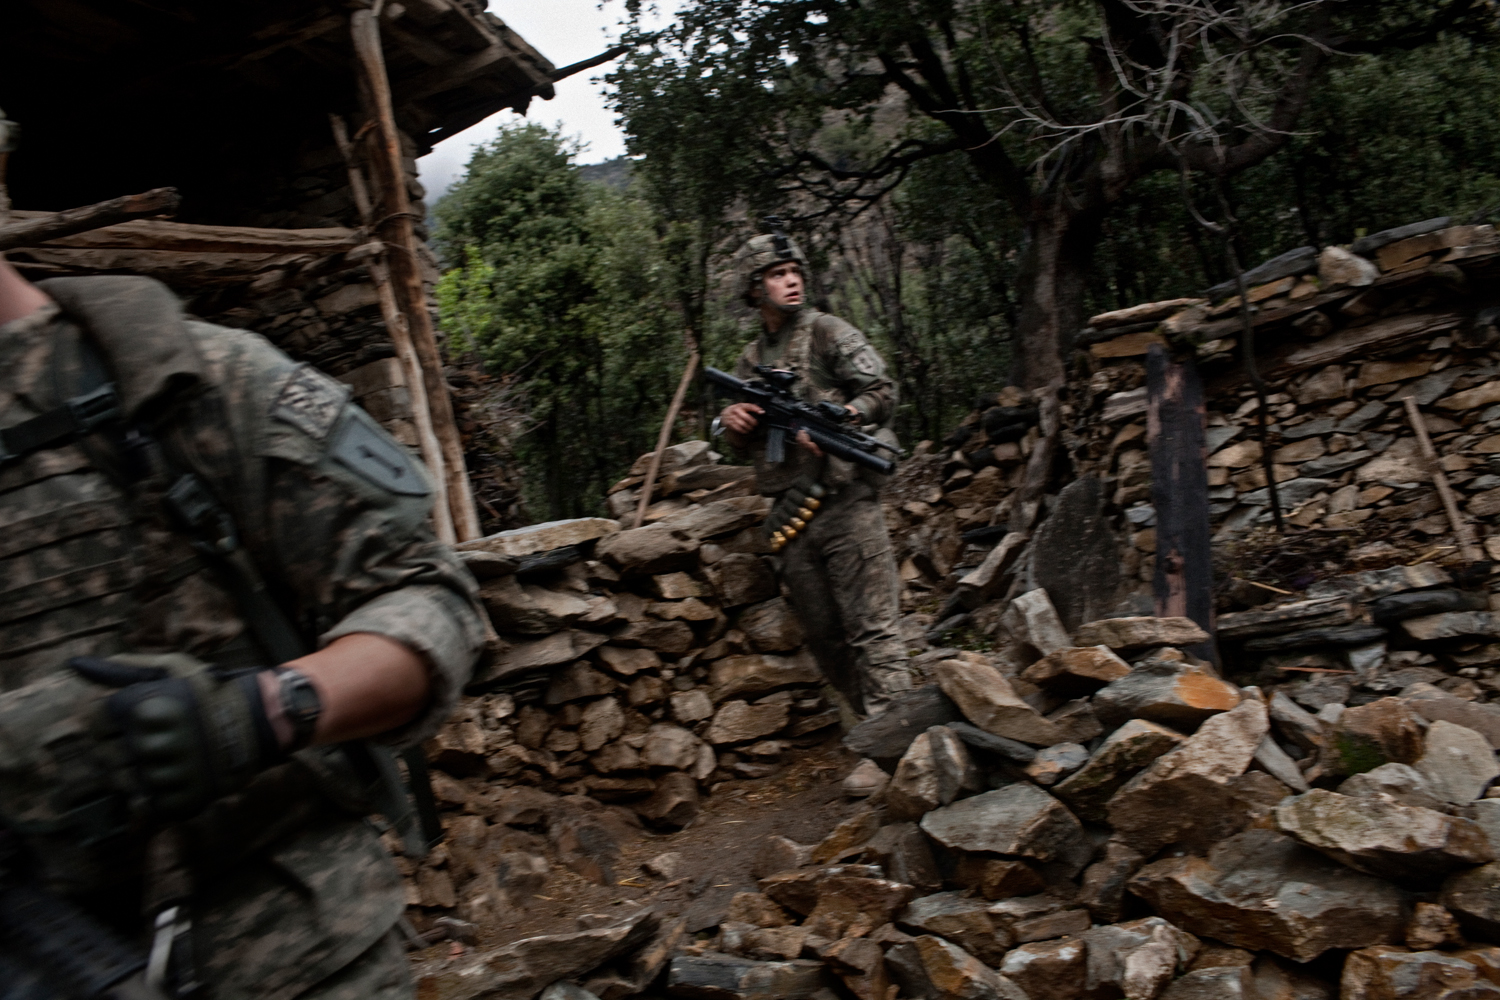 U.S. Army soldiers patrol near Loi Kolay village in the Korengal Valley, Kunar Province, Afghanistan.